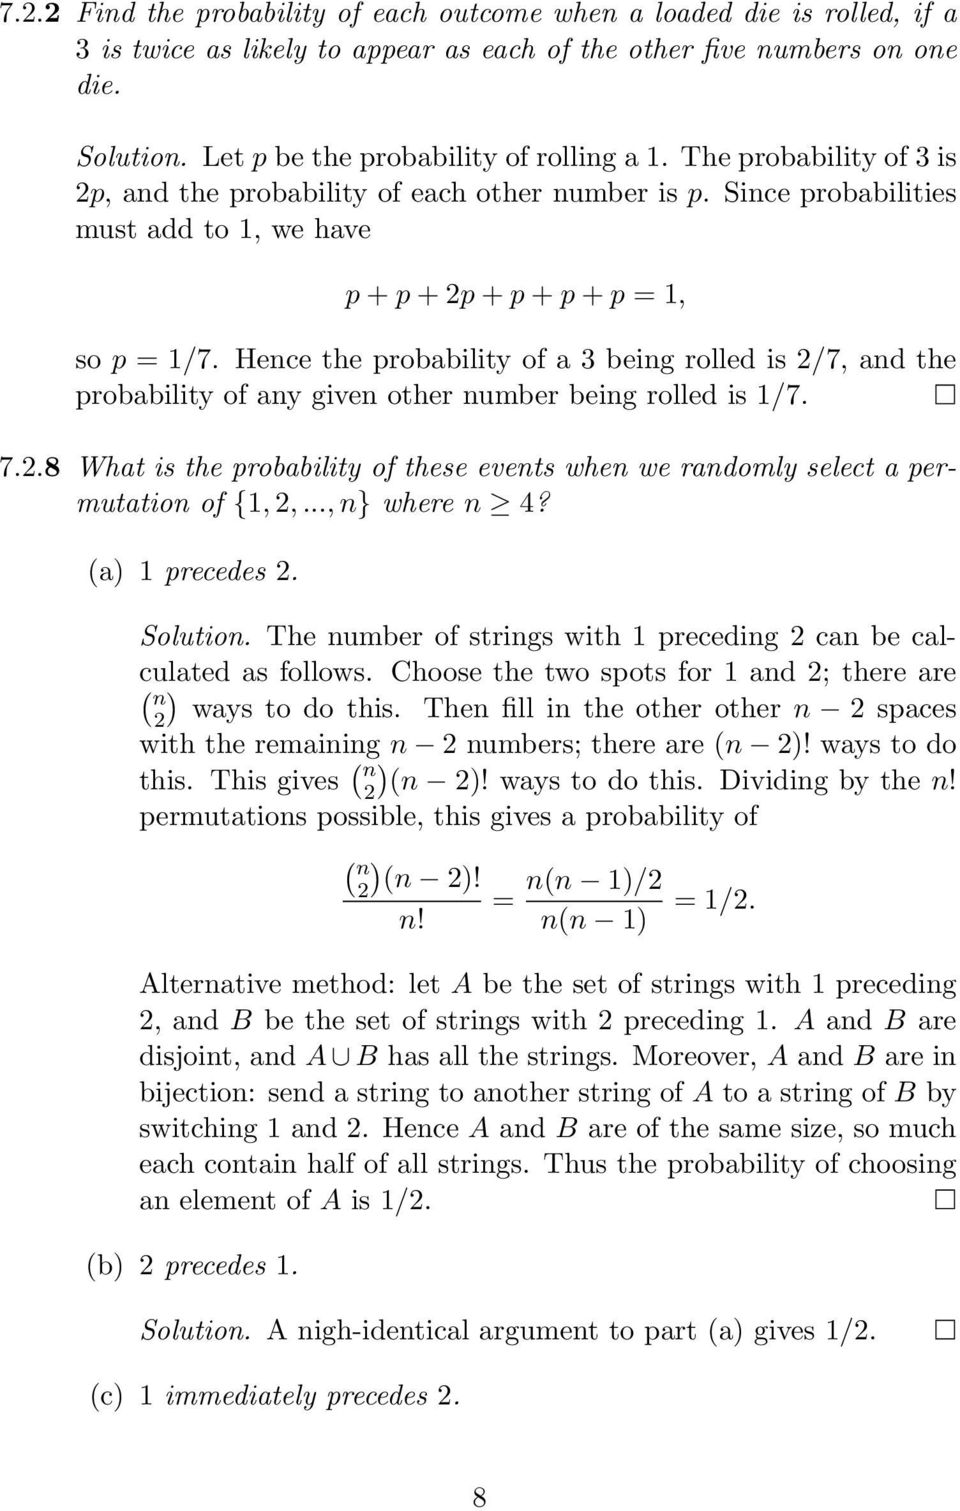 Hence the probability of a 3 being rolled is 2/7, and the probability of any given other number being rolled is 1/7. 7.2.8 What is the probability of these events when we randomly select a permutation of {1, 2,.